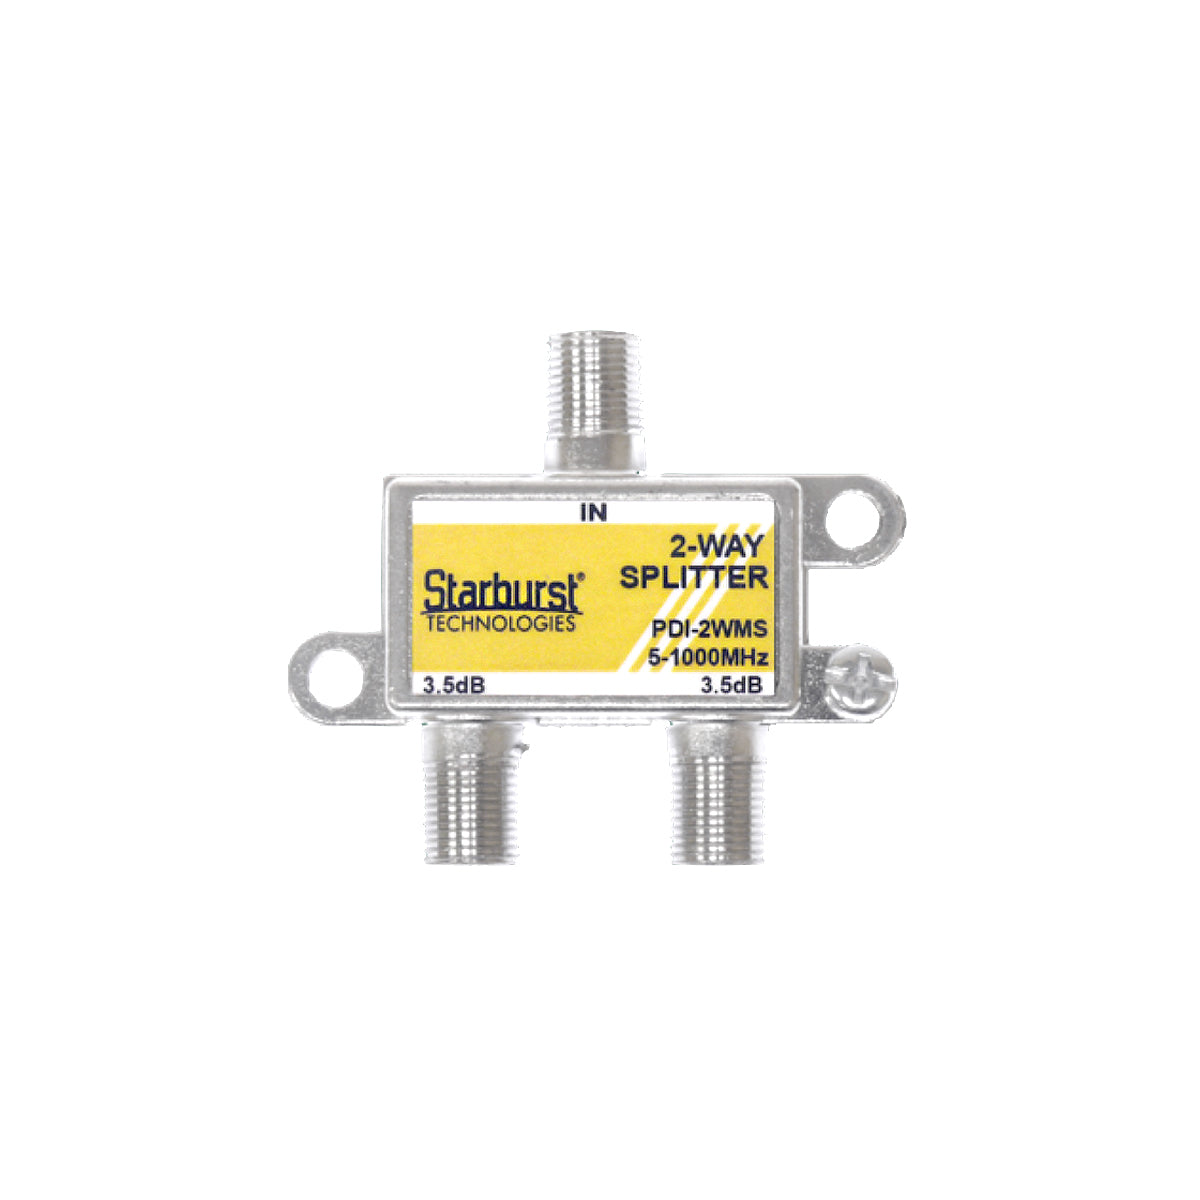 SB-2WMS 1GHz Mega Splitter 2 Way Horizontal 5 - 1000 MHz